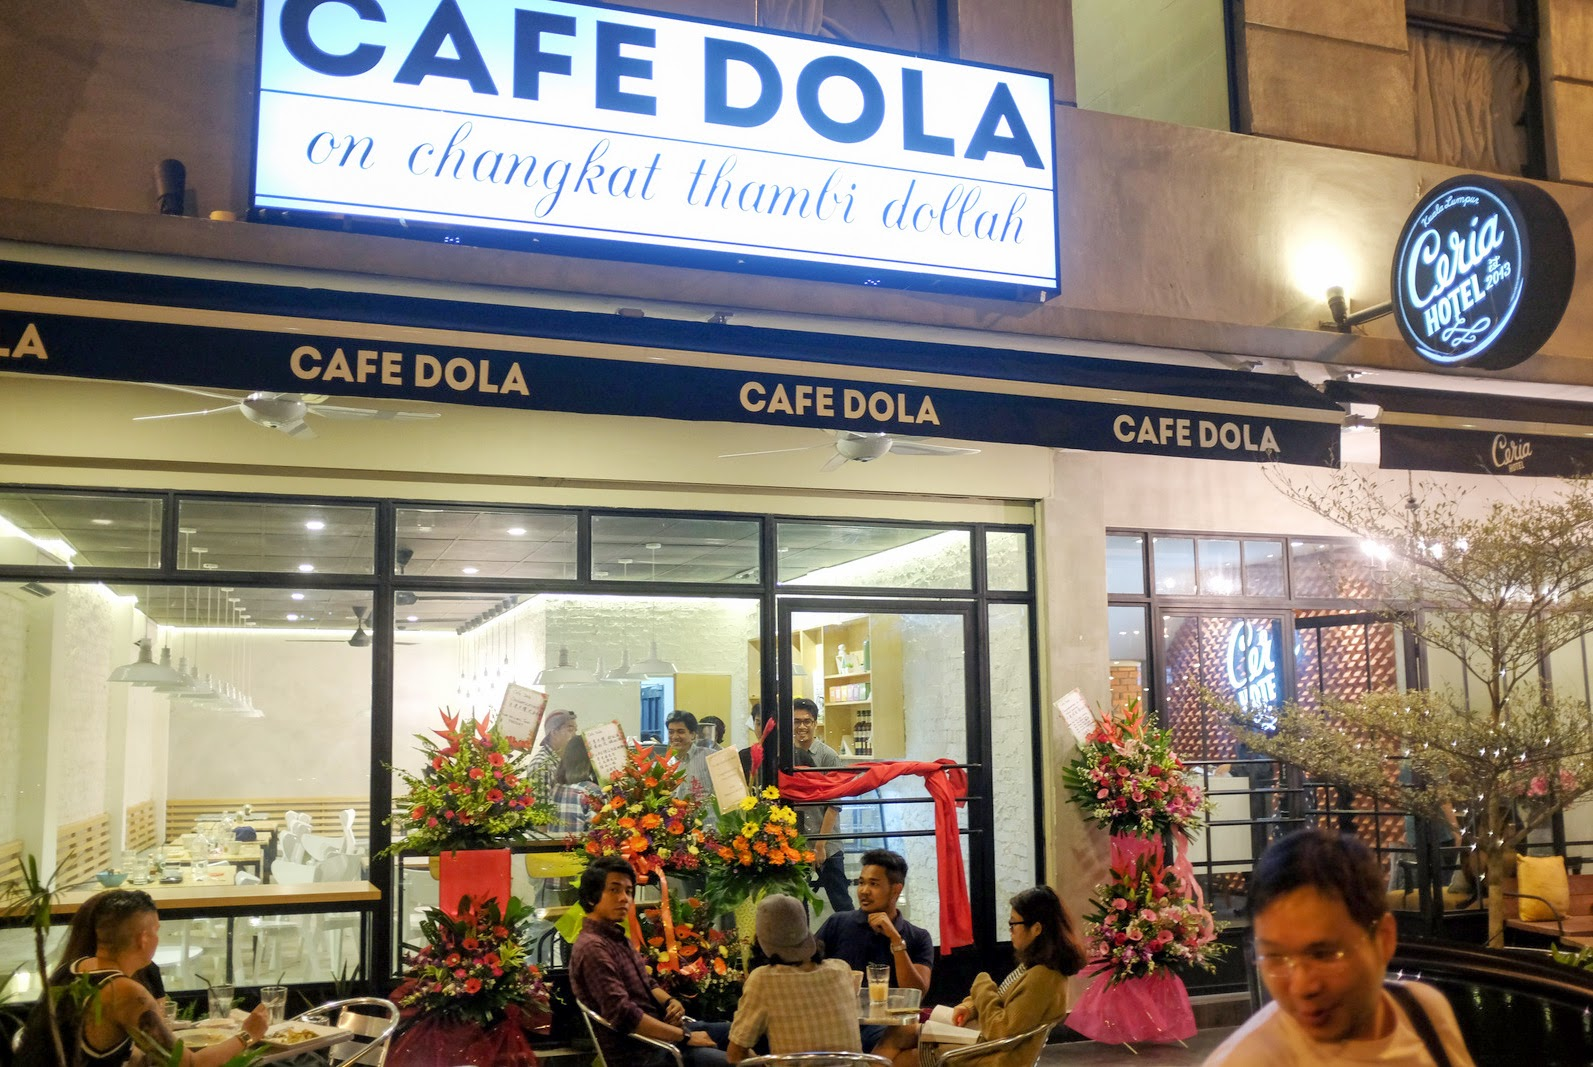 Cafe Dola @ Changkat Thambi Dollah